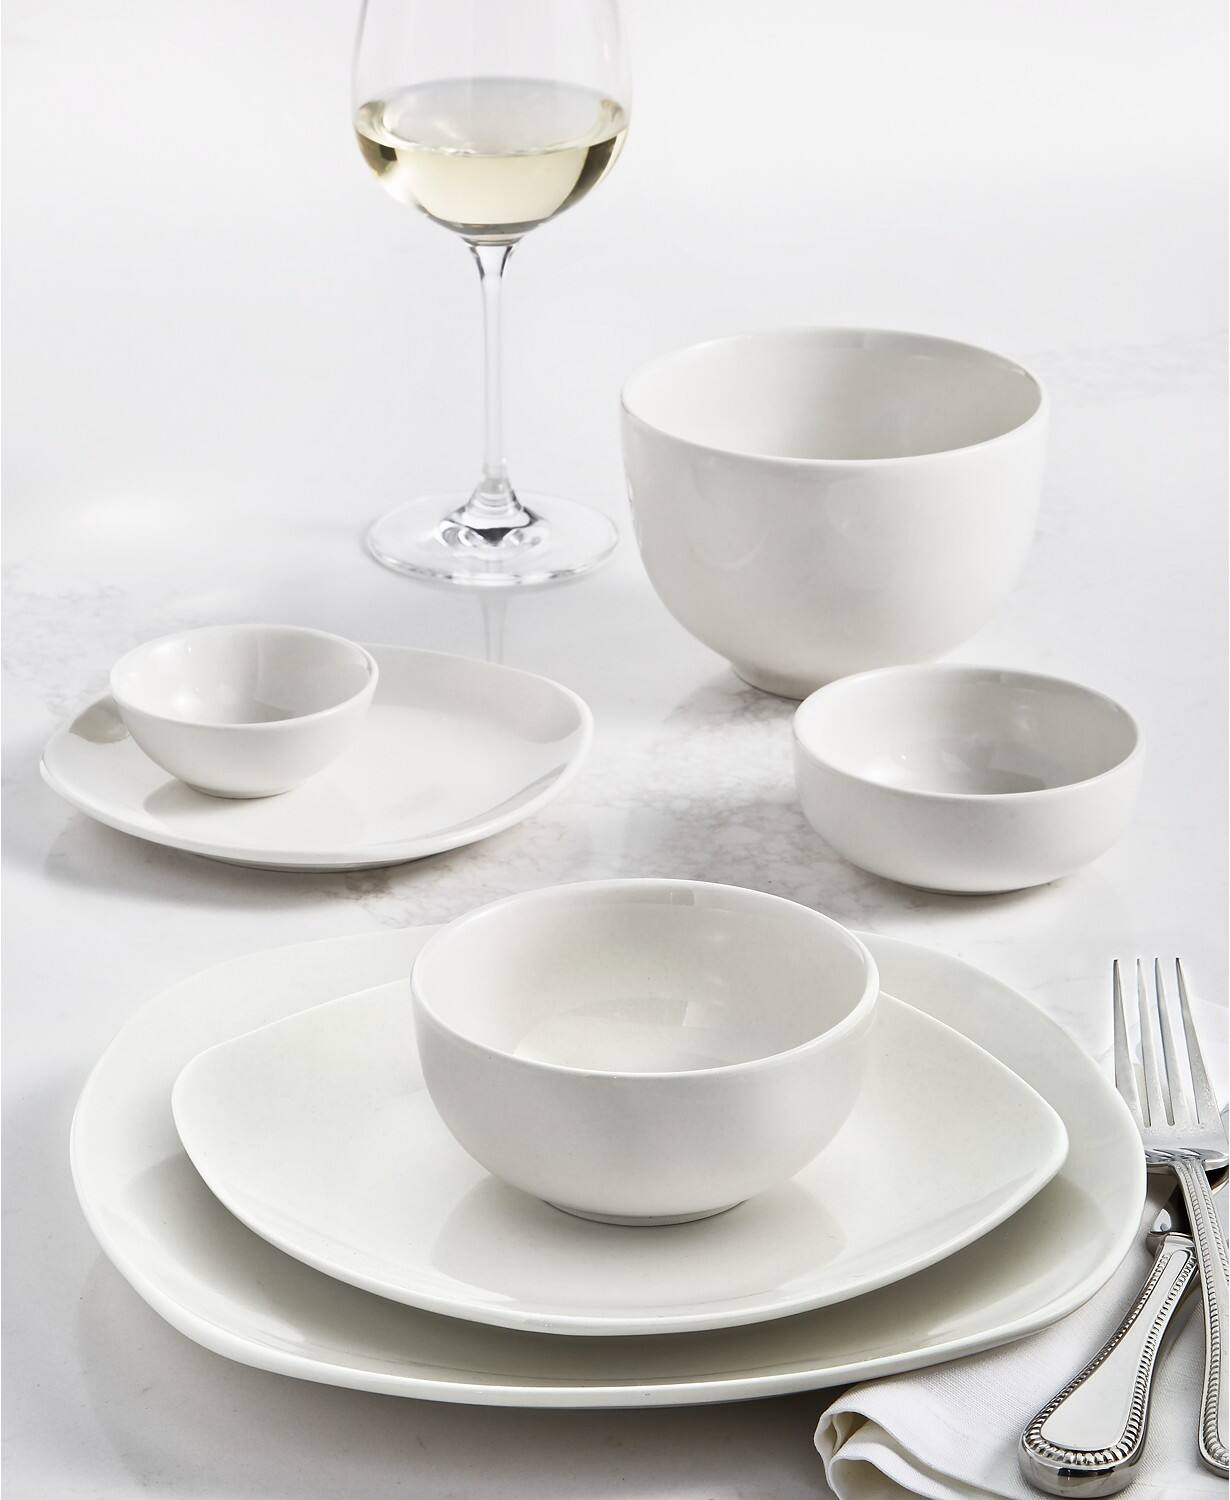 42-Piece Tabletops Unlimited Whiteware Dinnerware Set (Service for 6, 3-Styles)